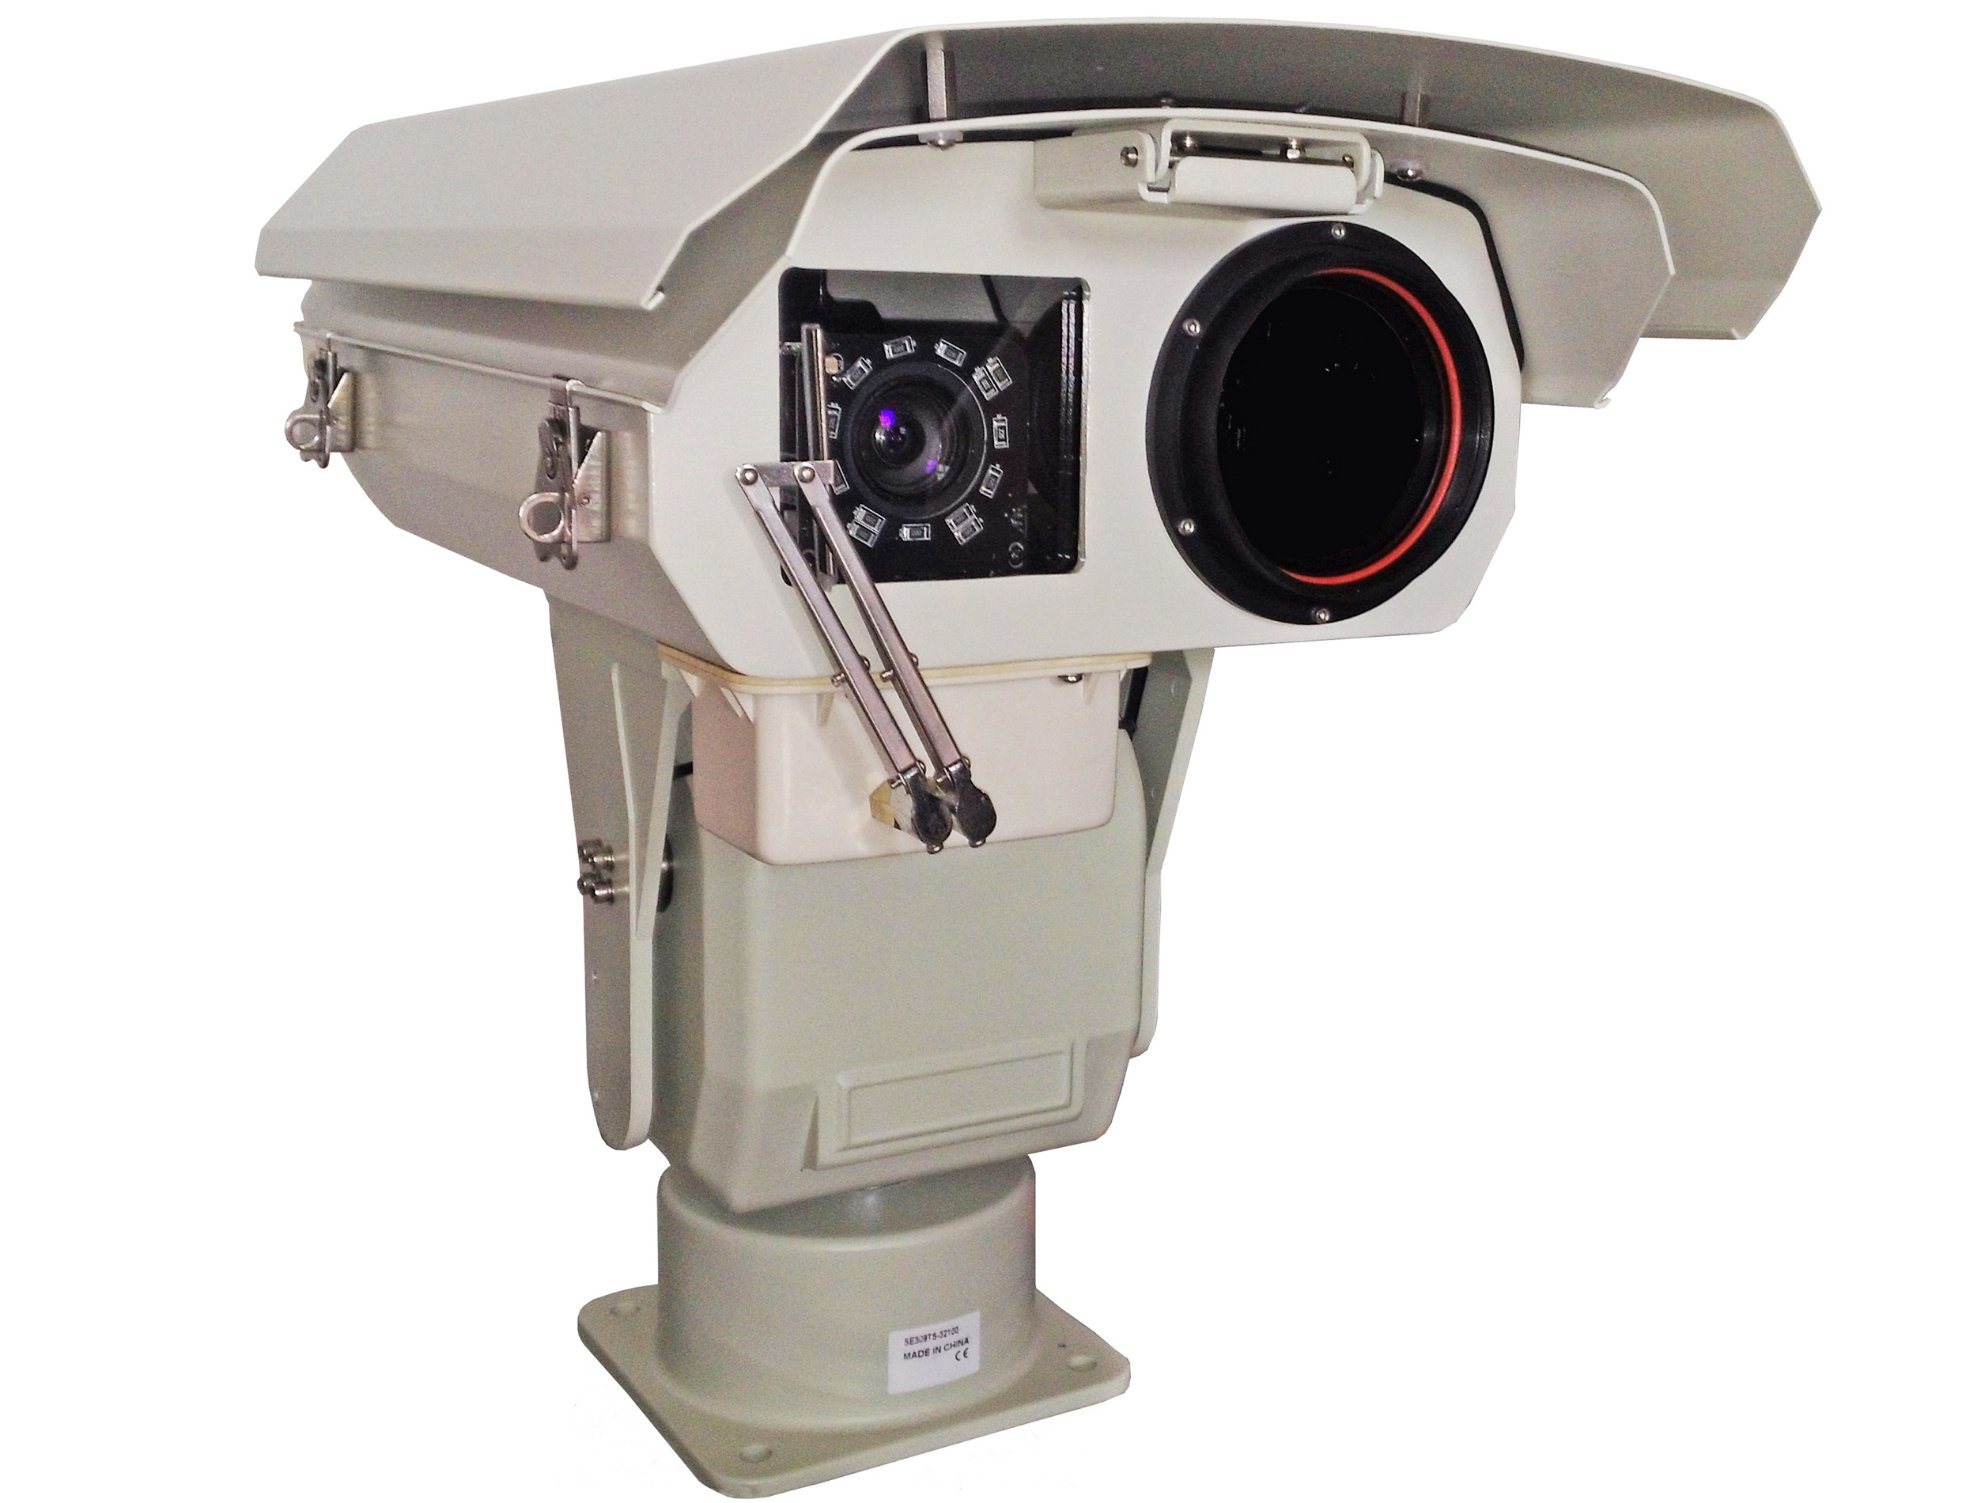 HD Heavy Duty Thermal Laser PTZ HD 4k 3840 X 2160@30fps 1920X1080@60fps Camera with Internet Available